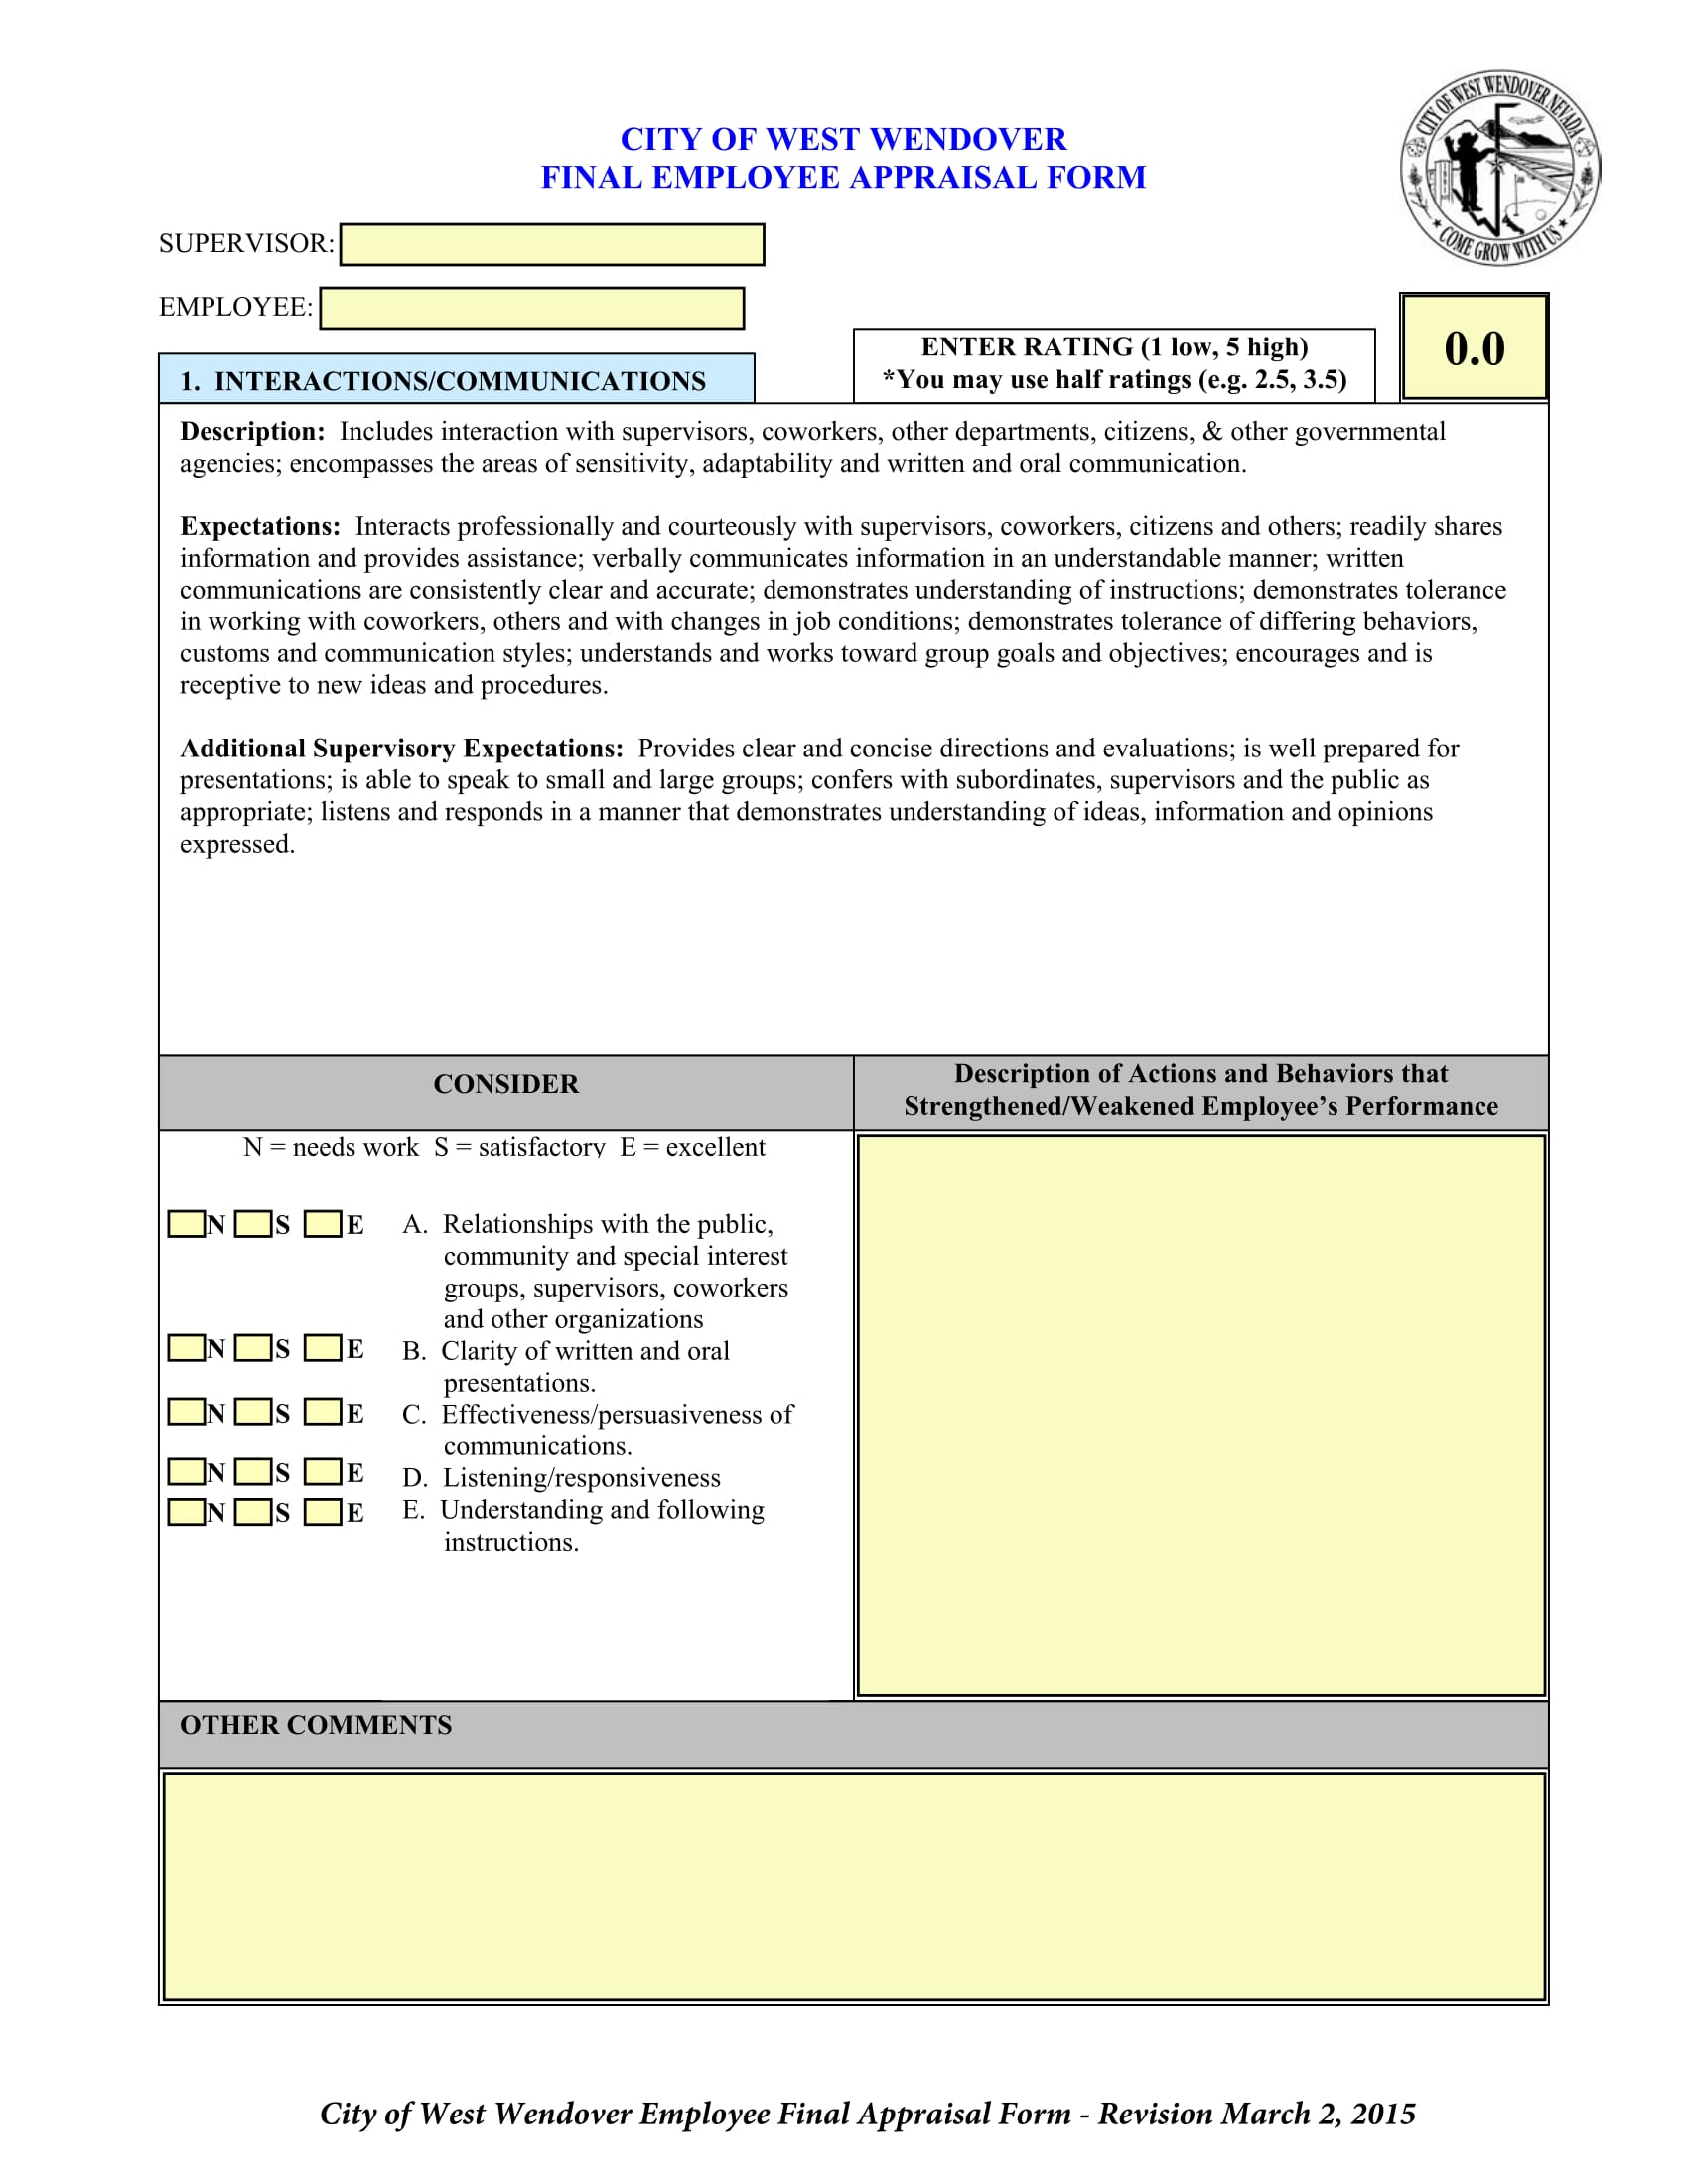 14 employee appraisal forms free word pdf xls format download final employee appraisal form falaconquin